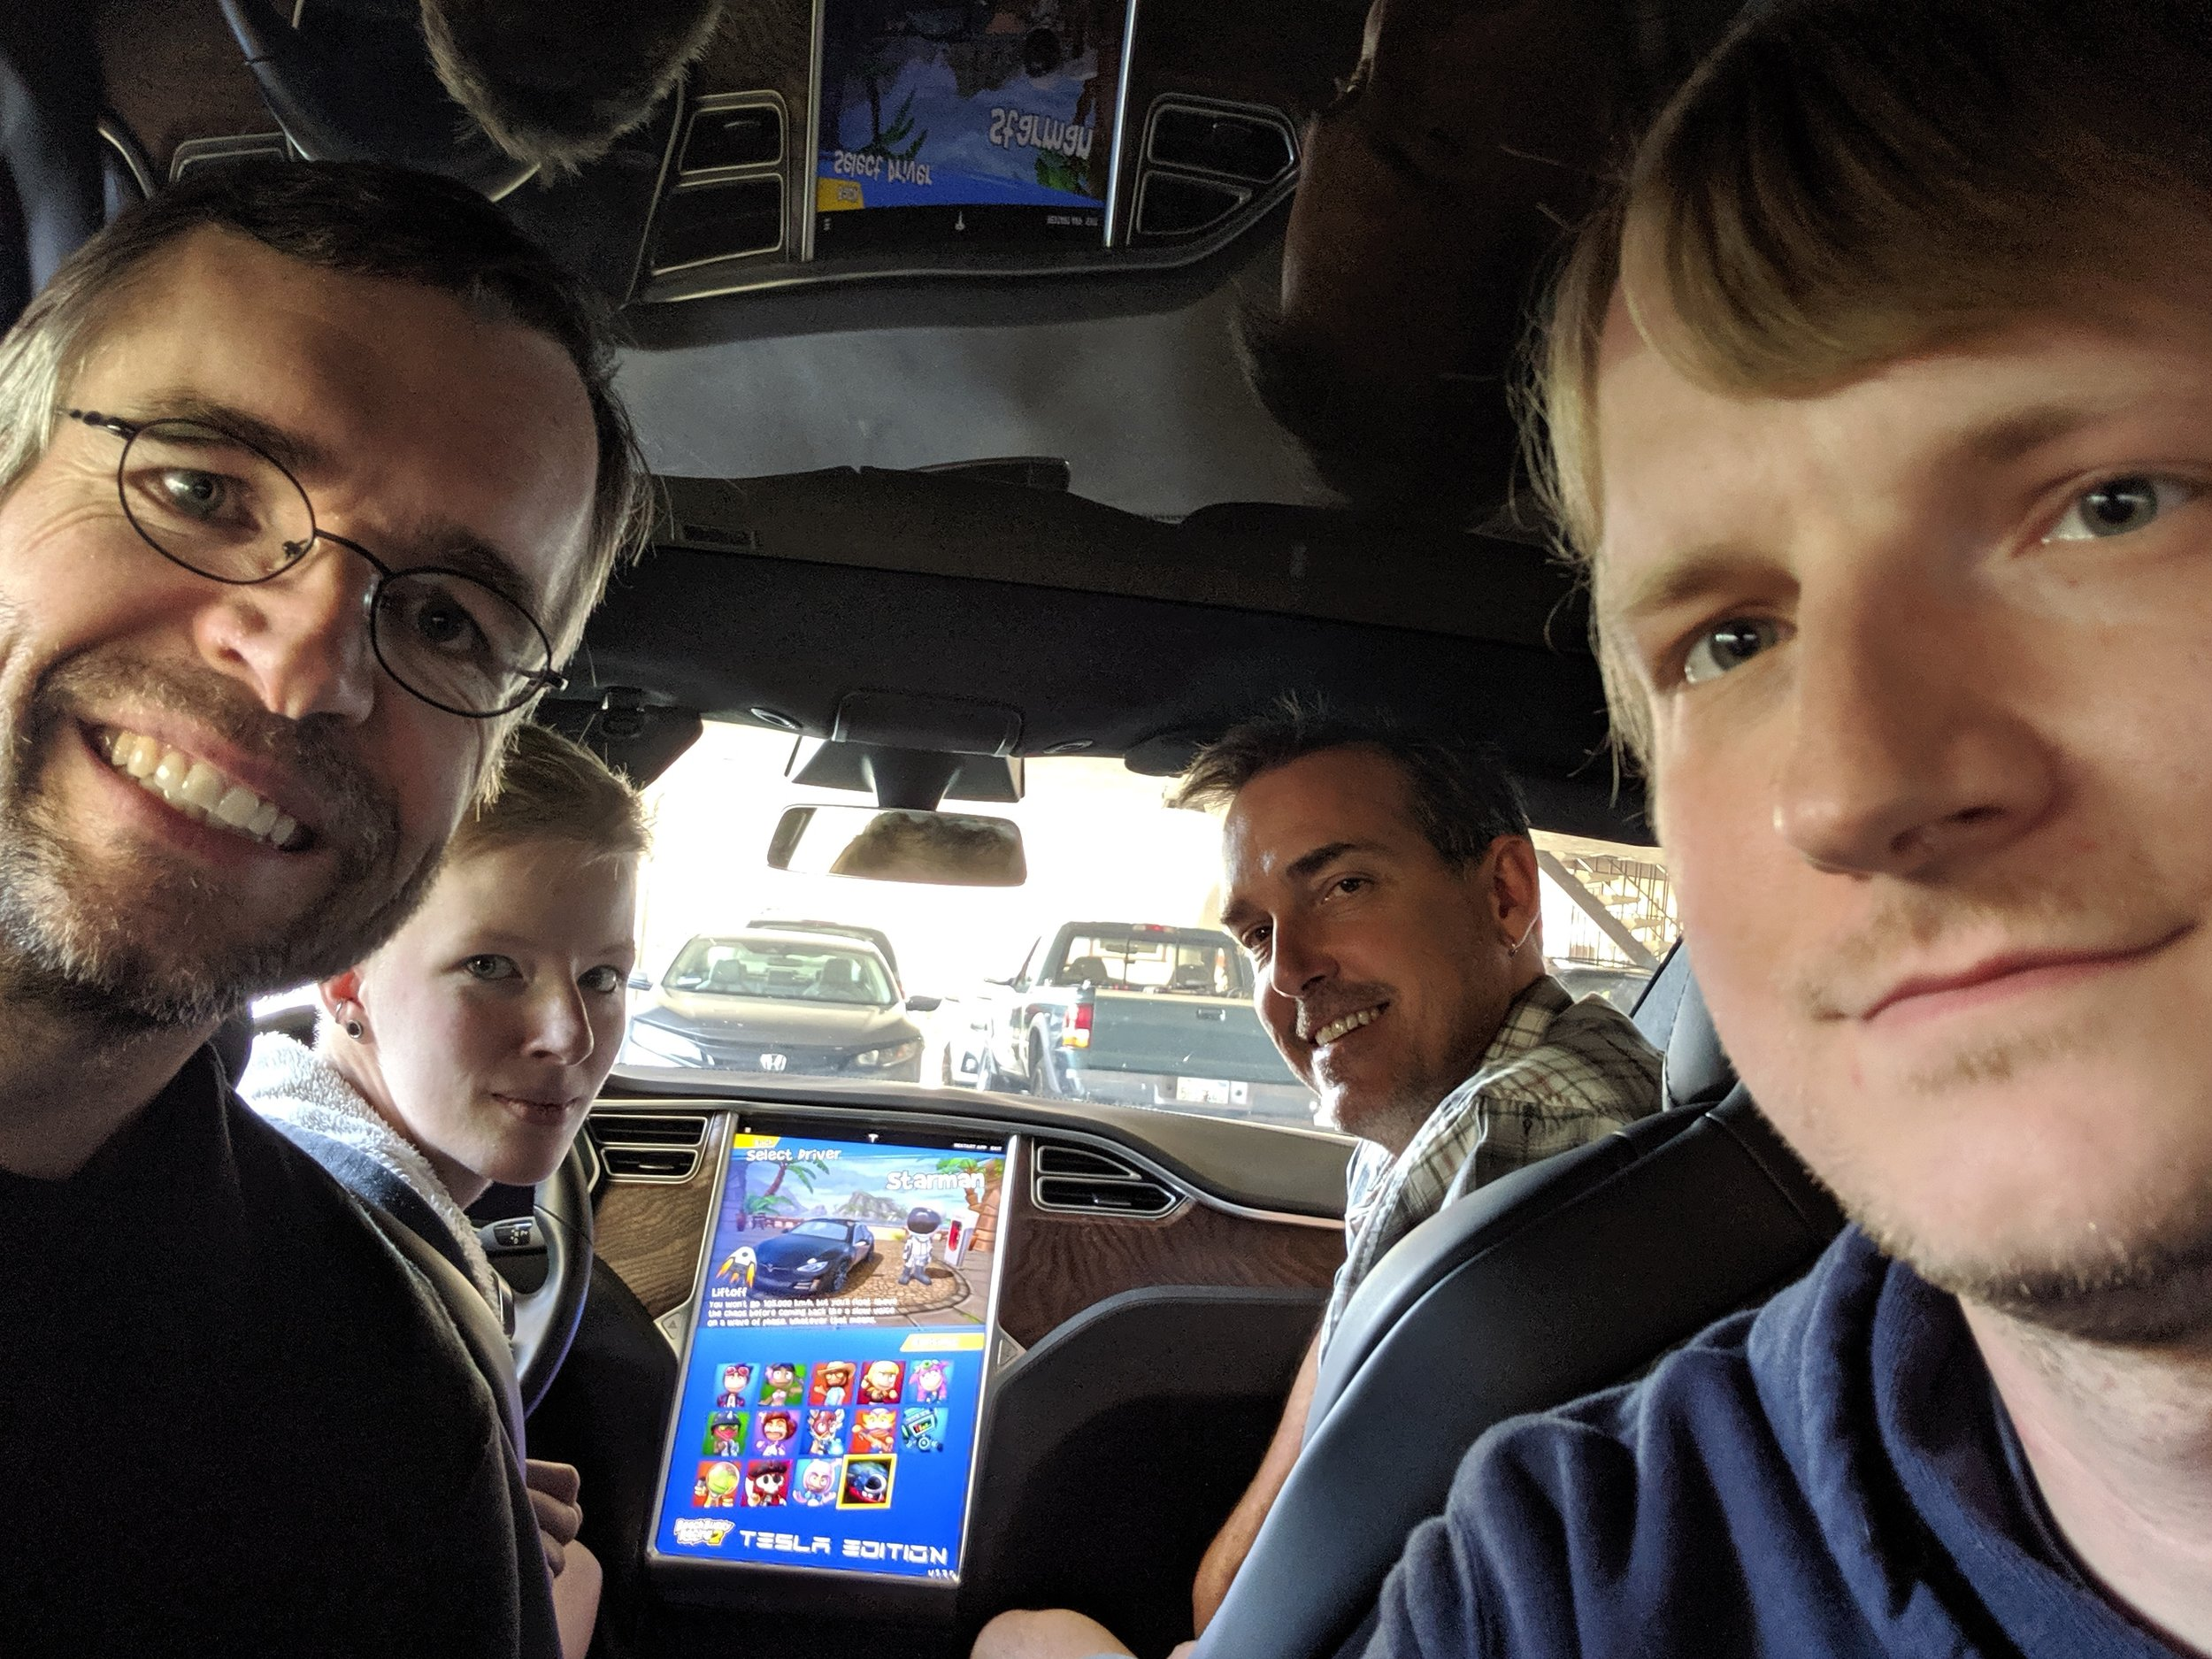 The full-time team in the Tesla just before launch. From left to right: Ralf, Timm, Matt, Ian.